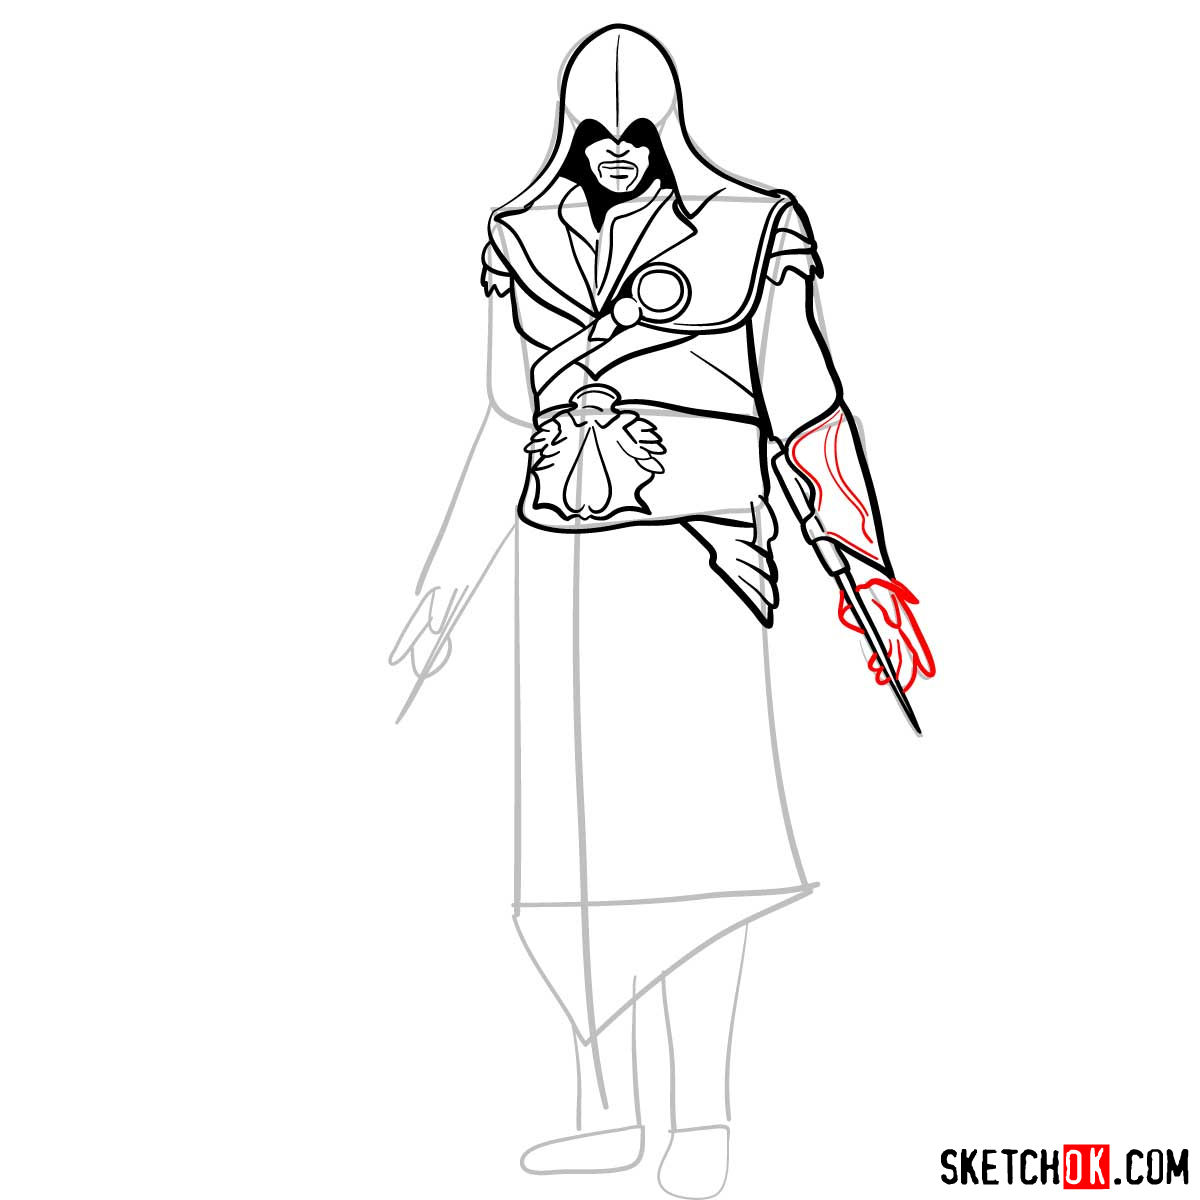 How to draw an Assassin from Assassin's Creed game - step 11